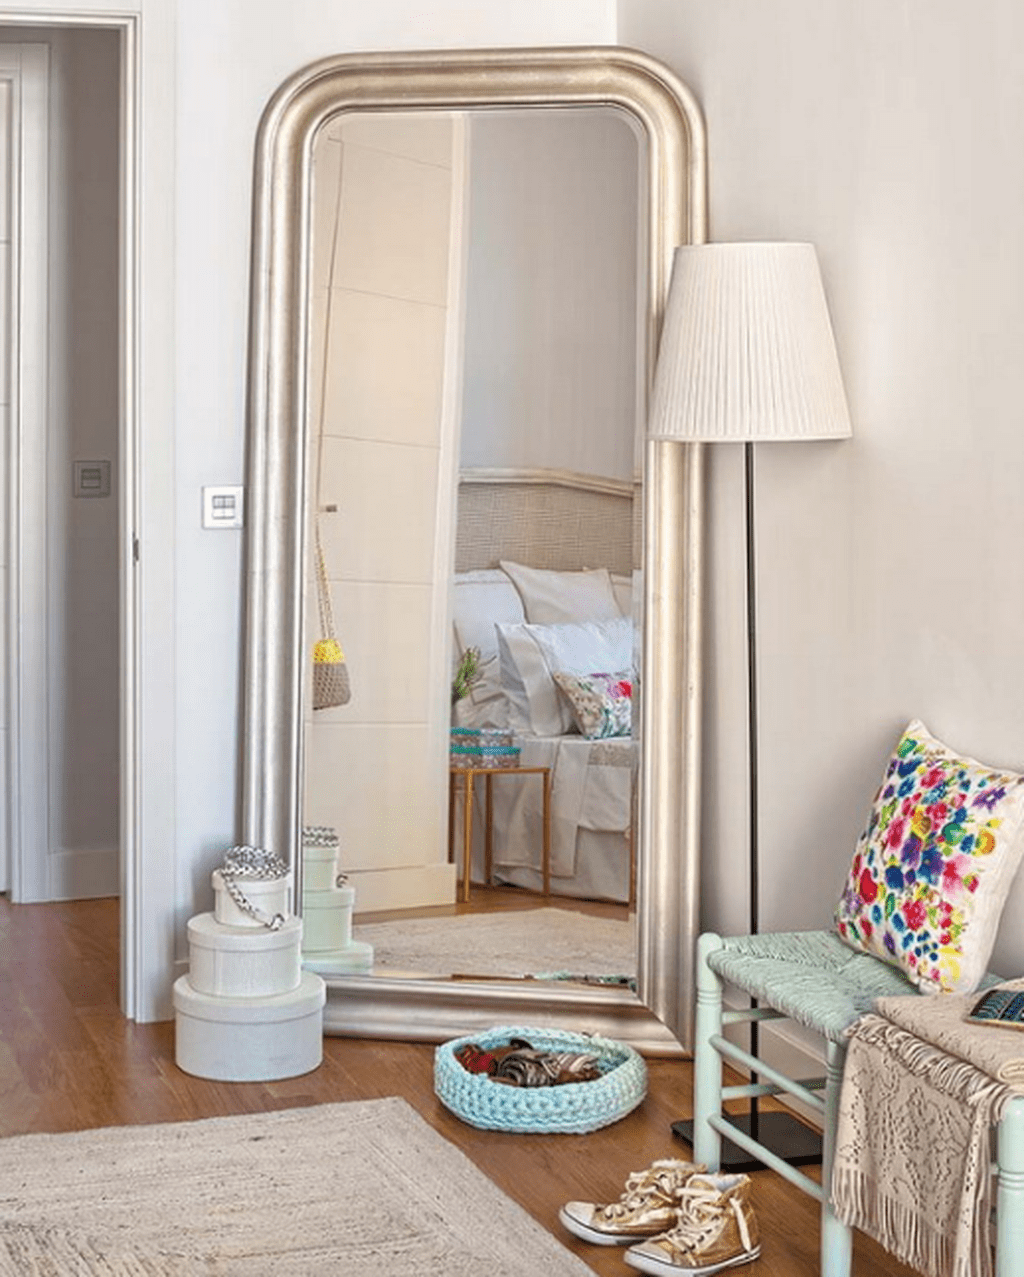 A Mirror Expands The Space And Works For The Dressing Corner